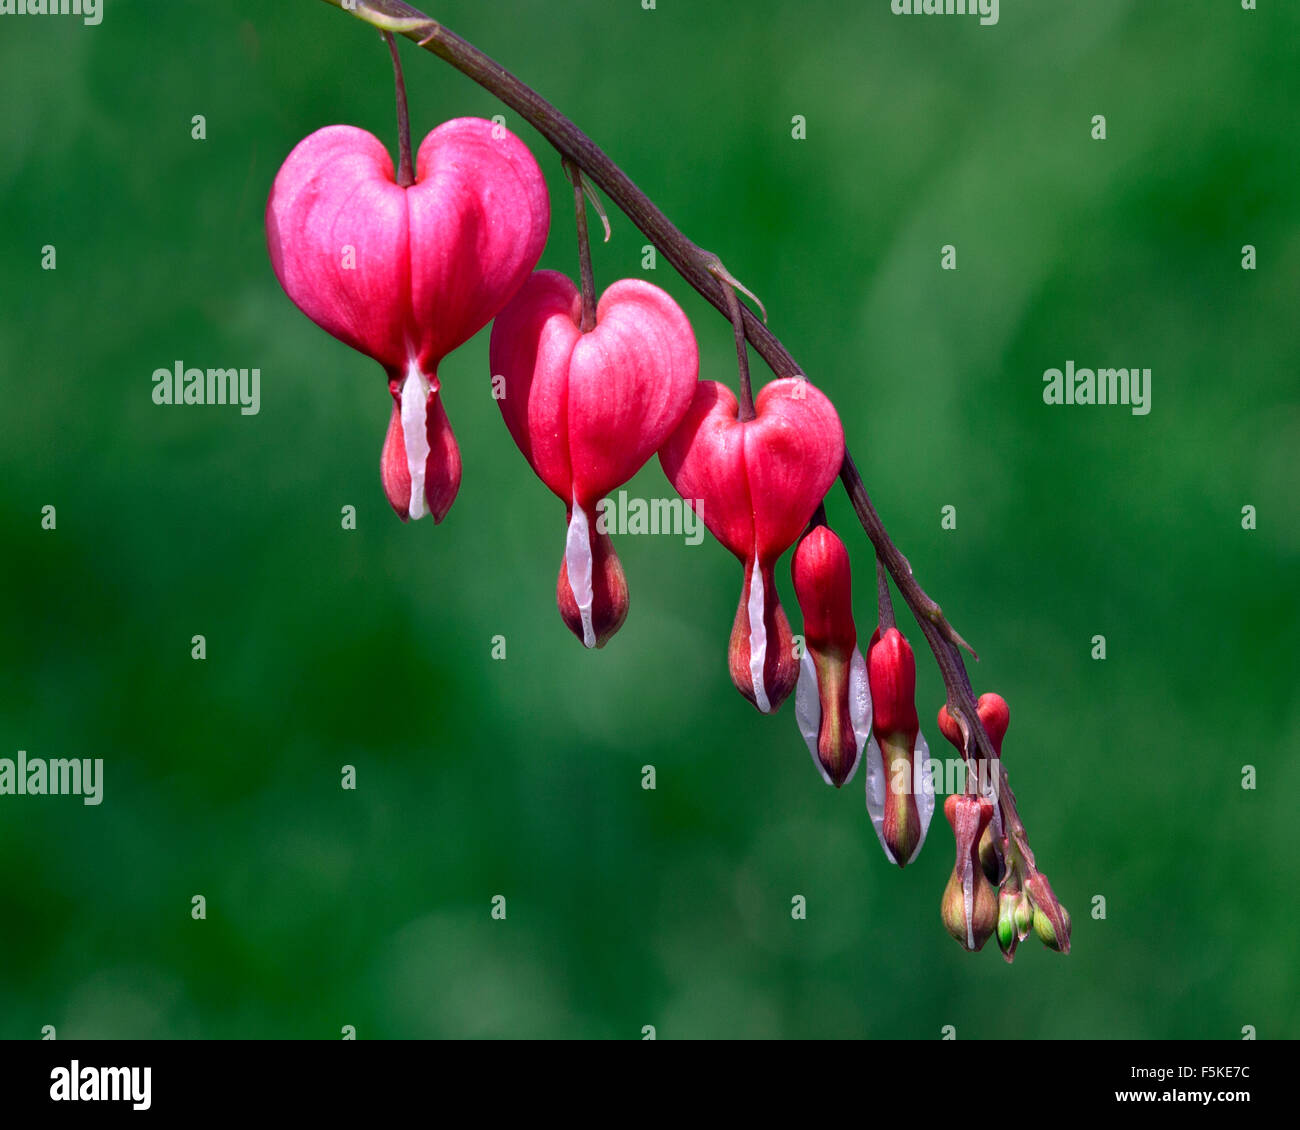 One of the most beautiful plants I have seen. This flower known as the Bleeding Heart does not bloom for long. Stock Photo